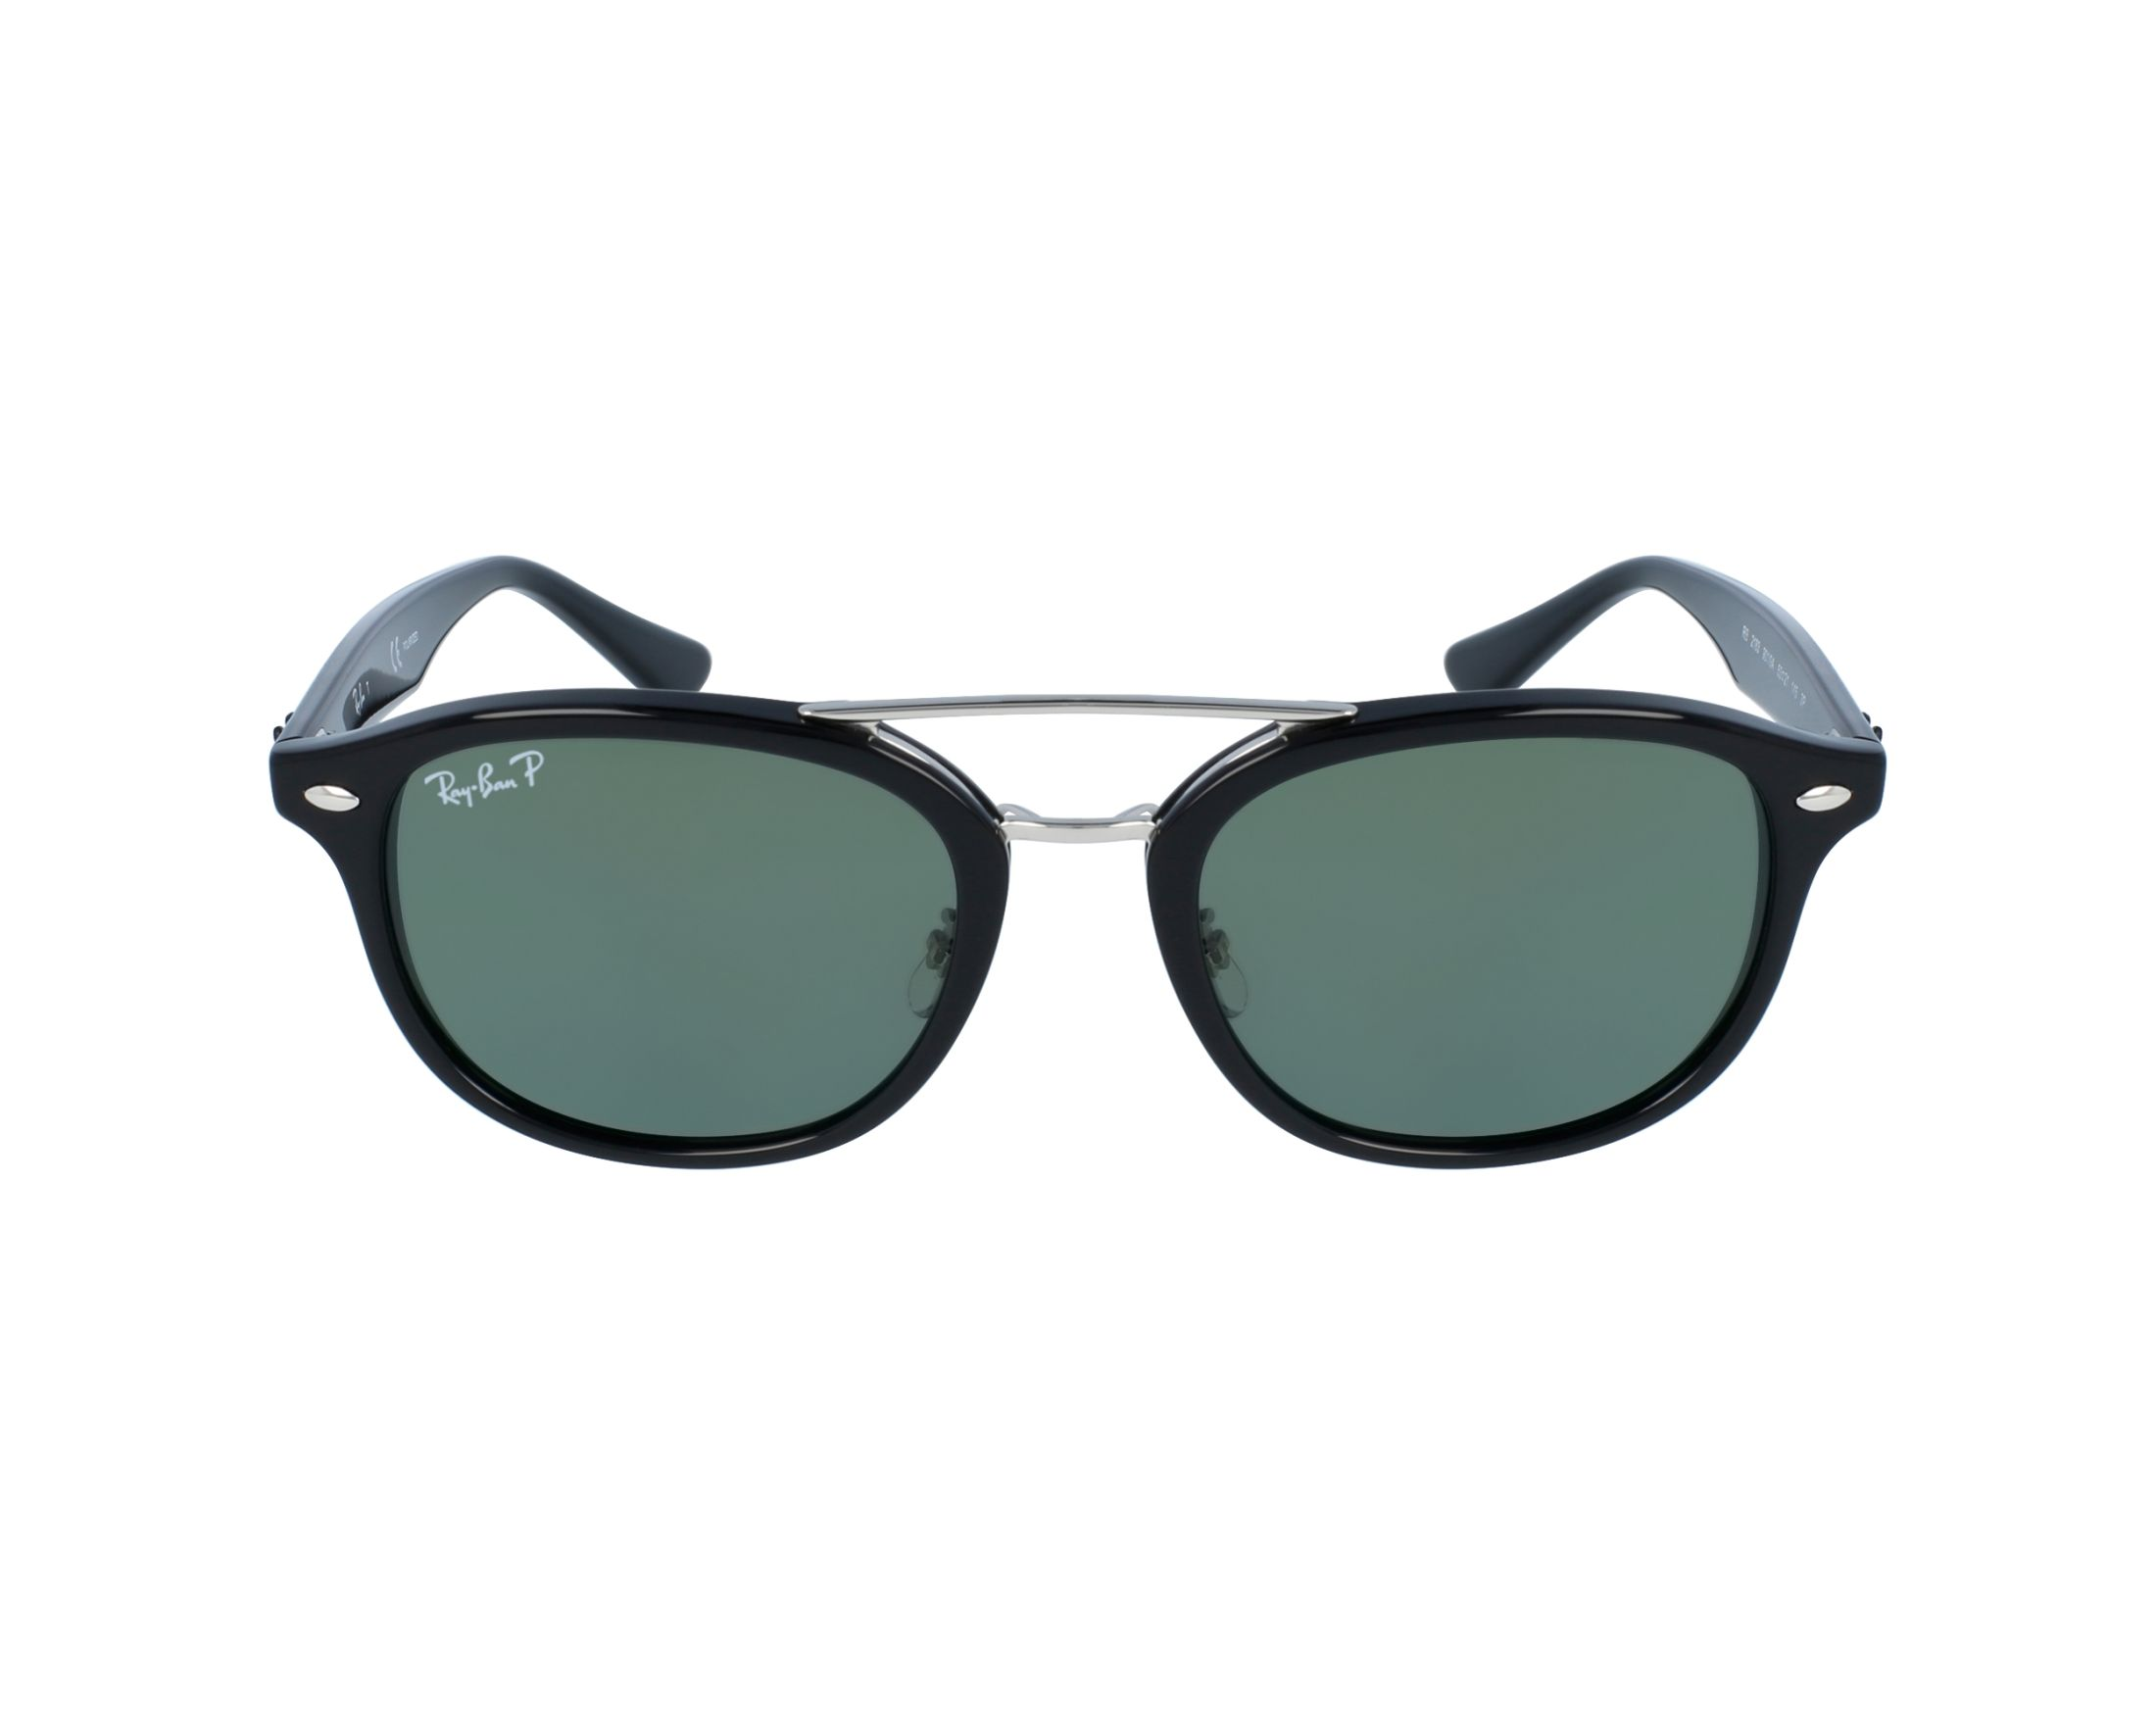 53b1193928 Sunglasses Ray-Ban RB-2183 901 9A 53-21 Black Silver profile